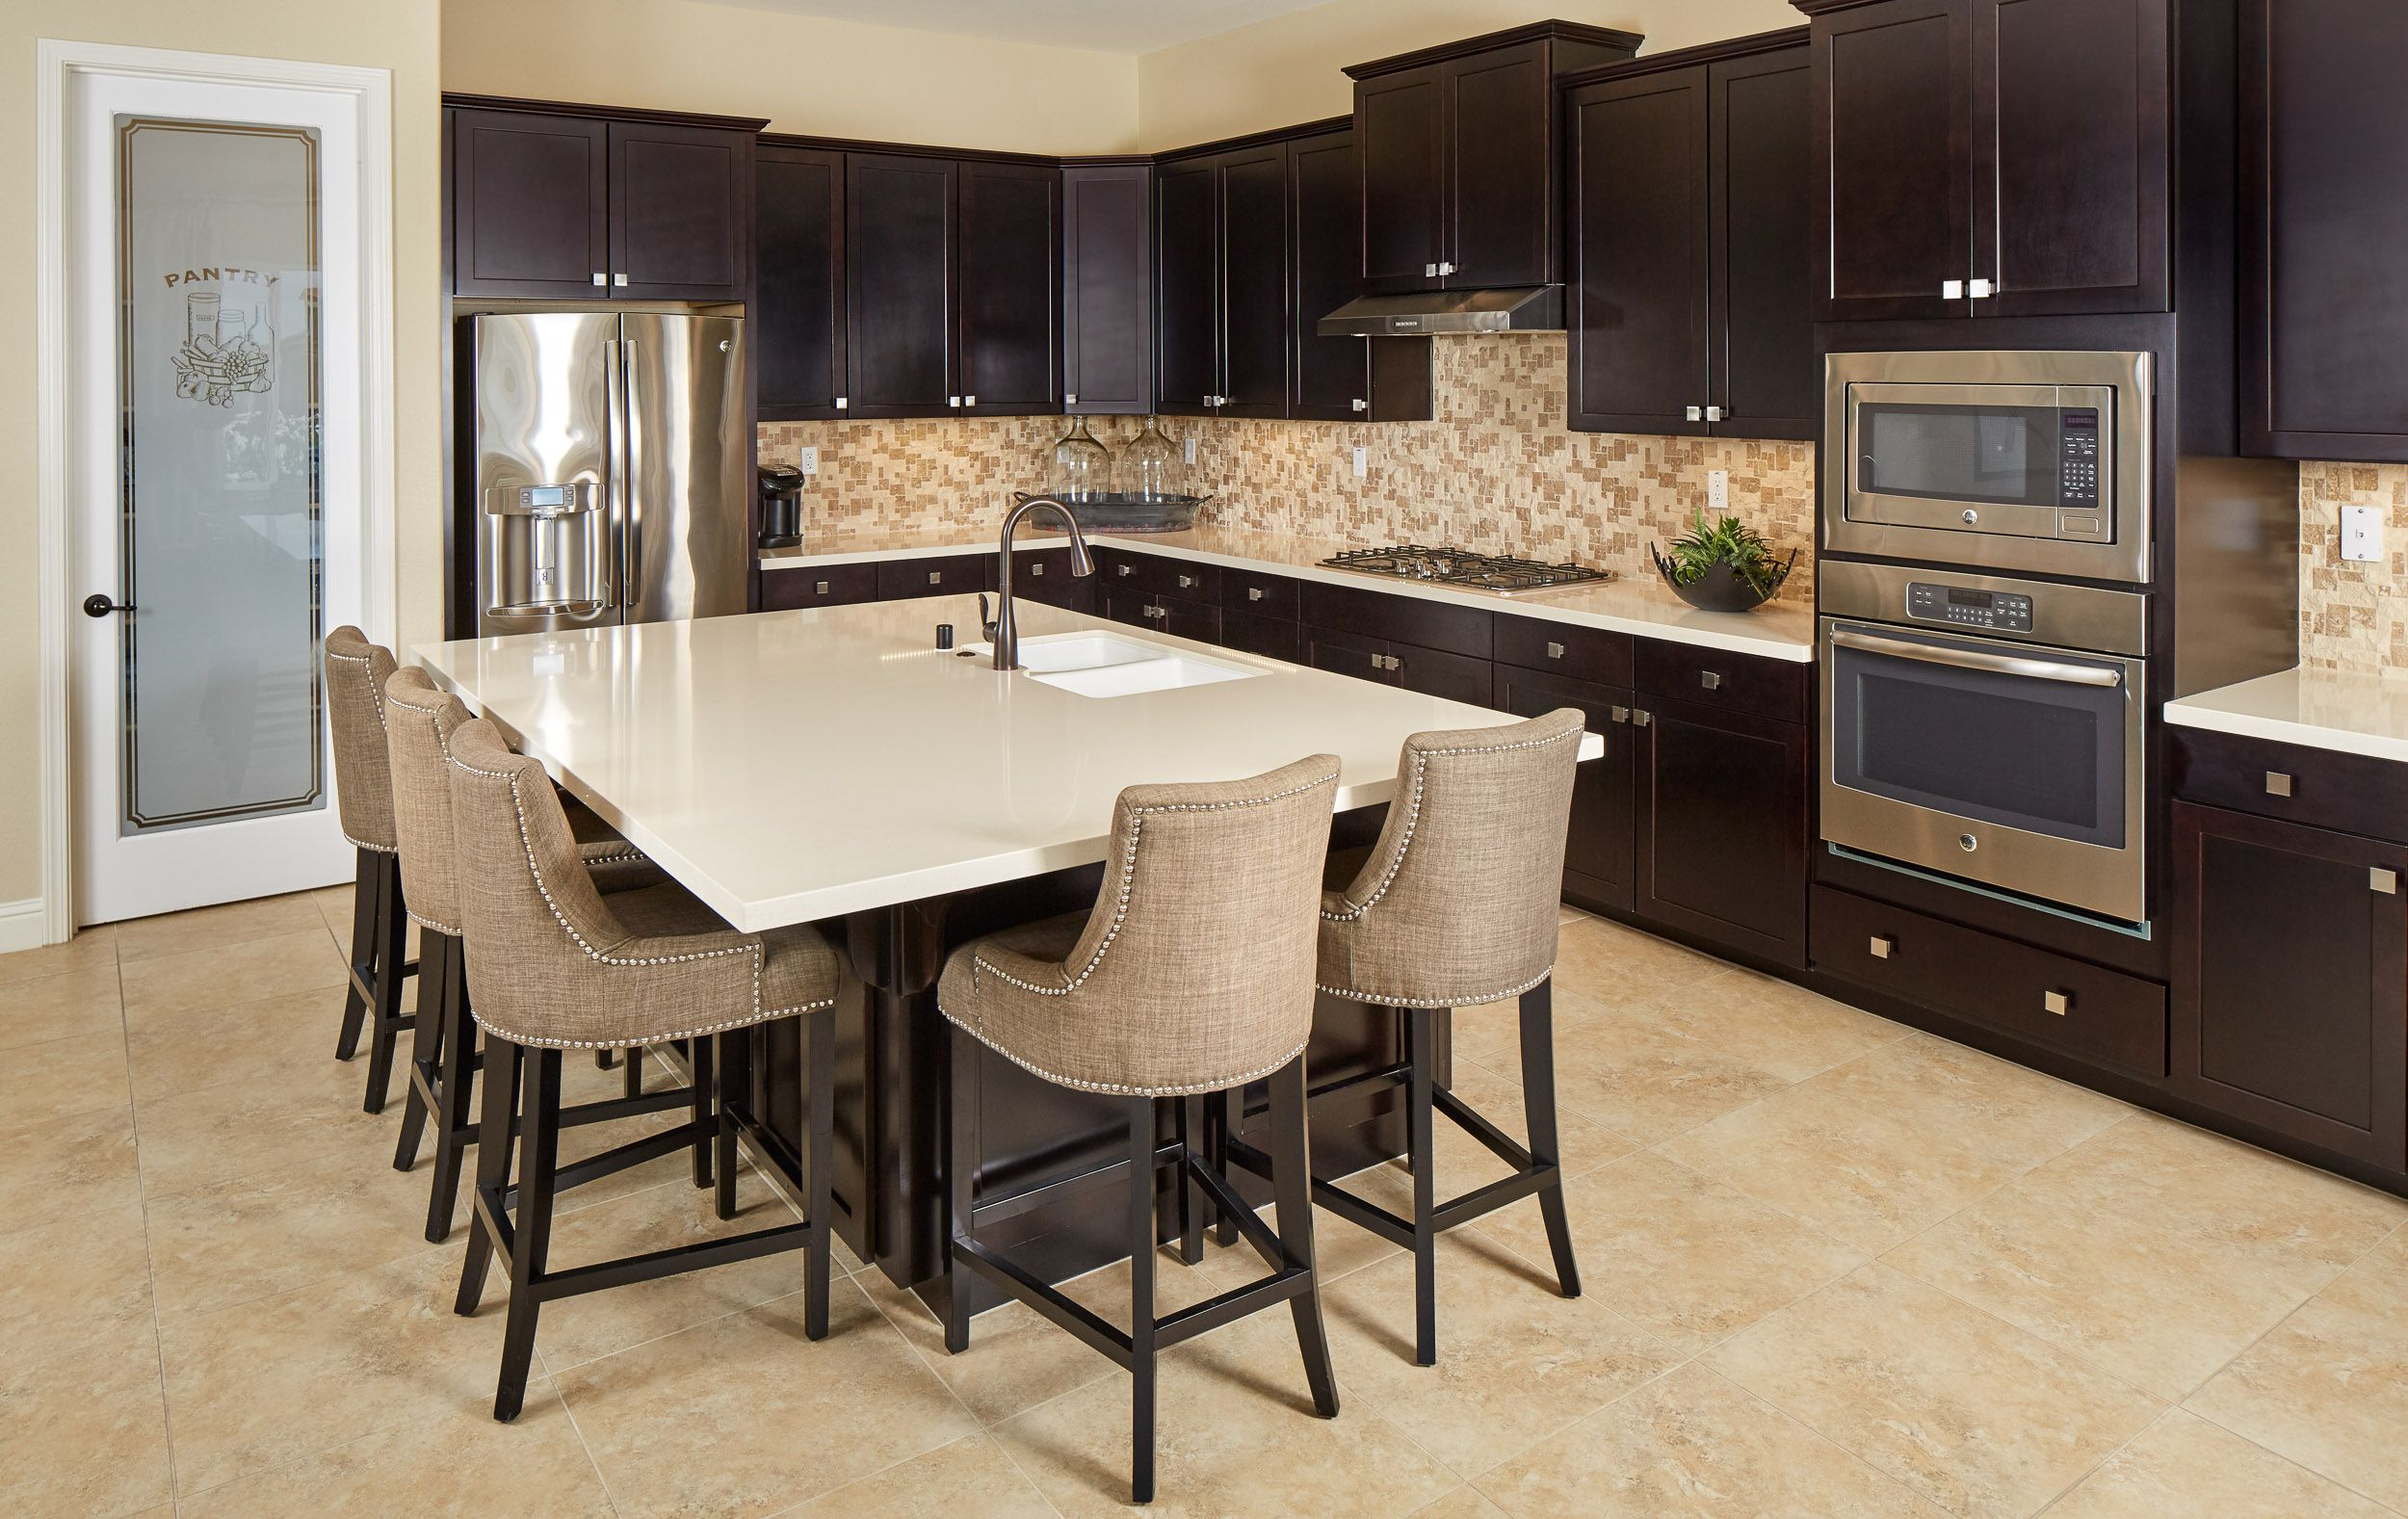 Make Your Culinarycreations Epic In Your Nextkitchen Kitchen Dreamhome Homesforsale Elkgrove California With Images Home Decor Dream House